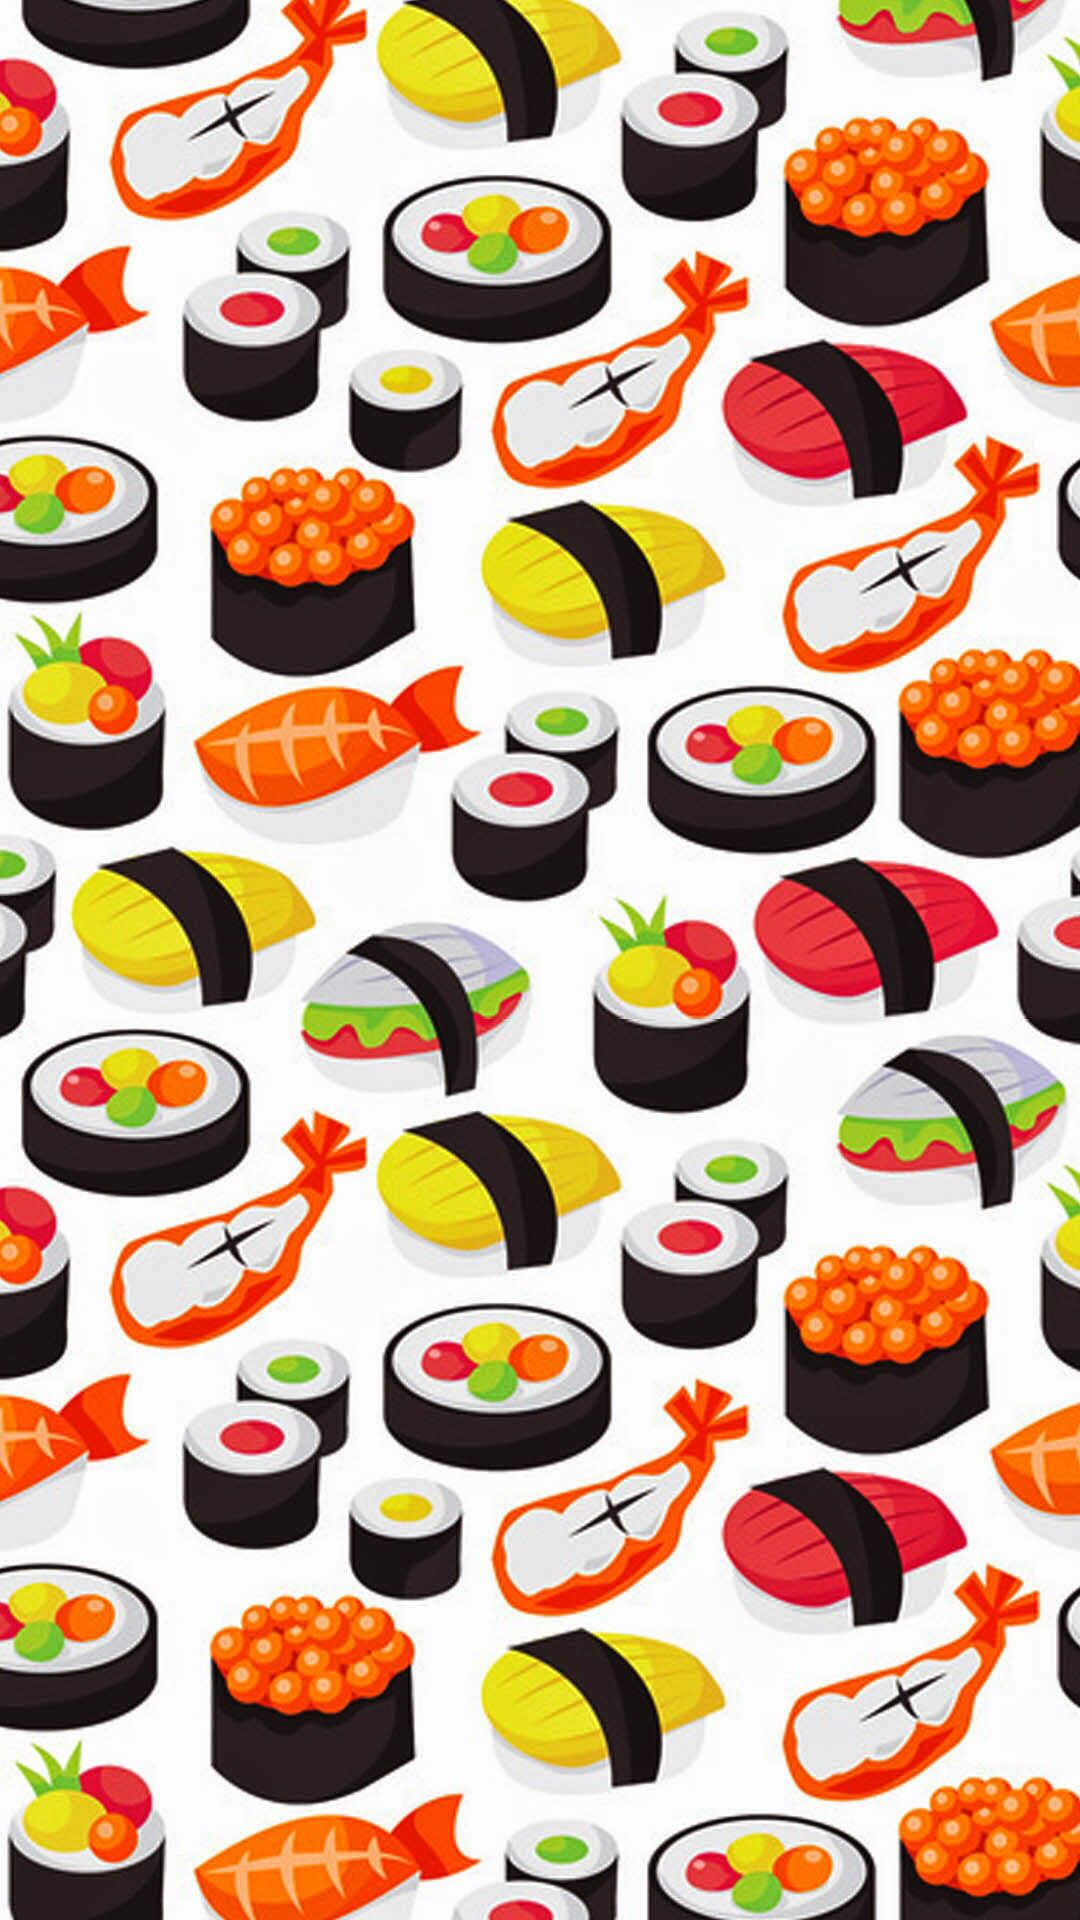 Sushi and seafood print Iphone wallpaper food Iphone wallpaper 1080x1920